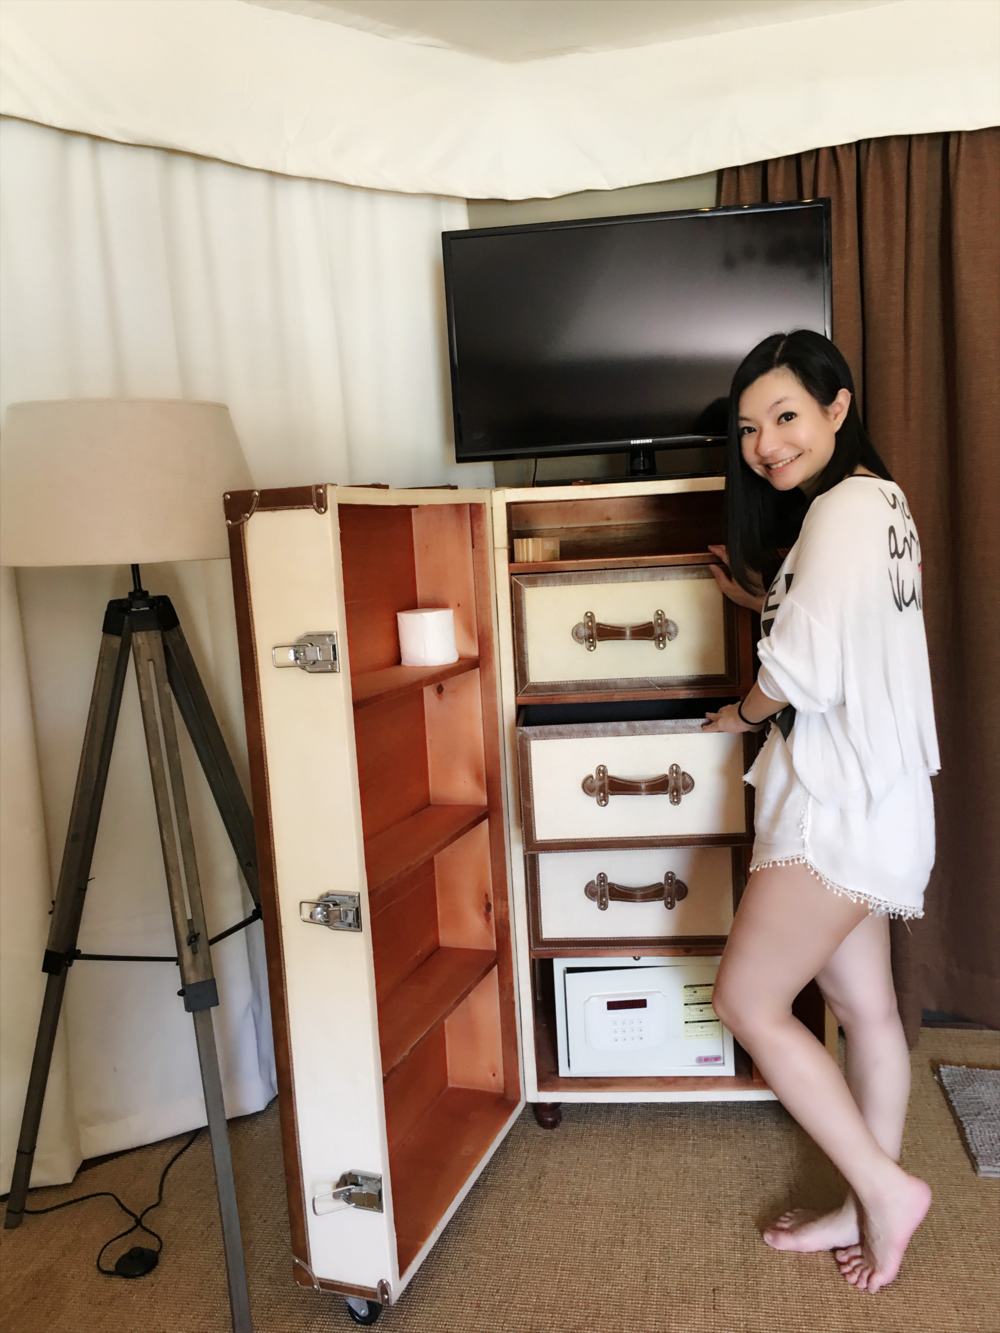 Trunk of chest drawers..